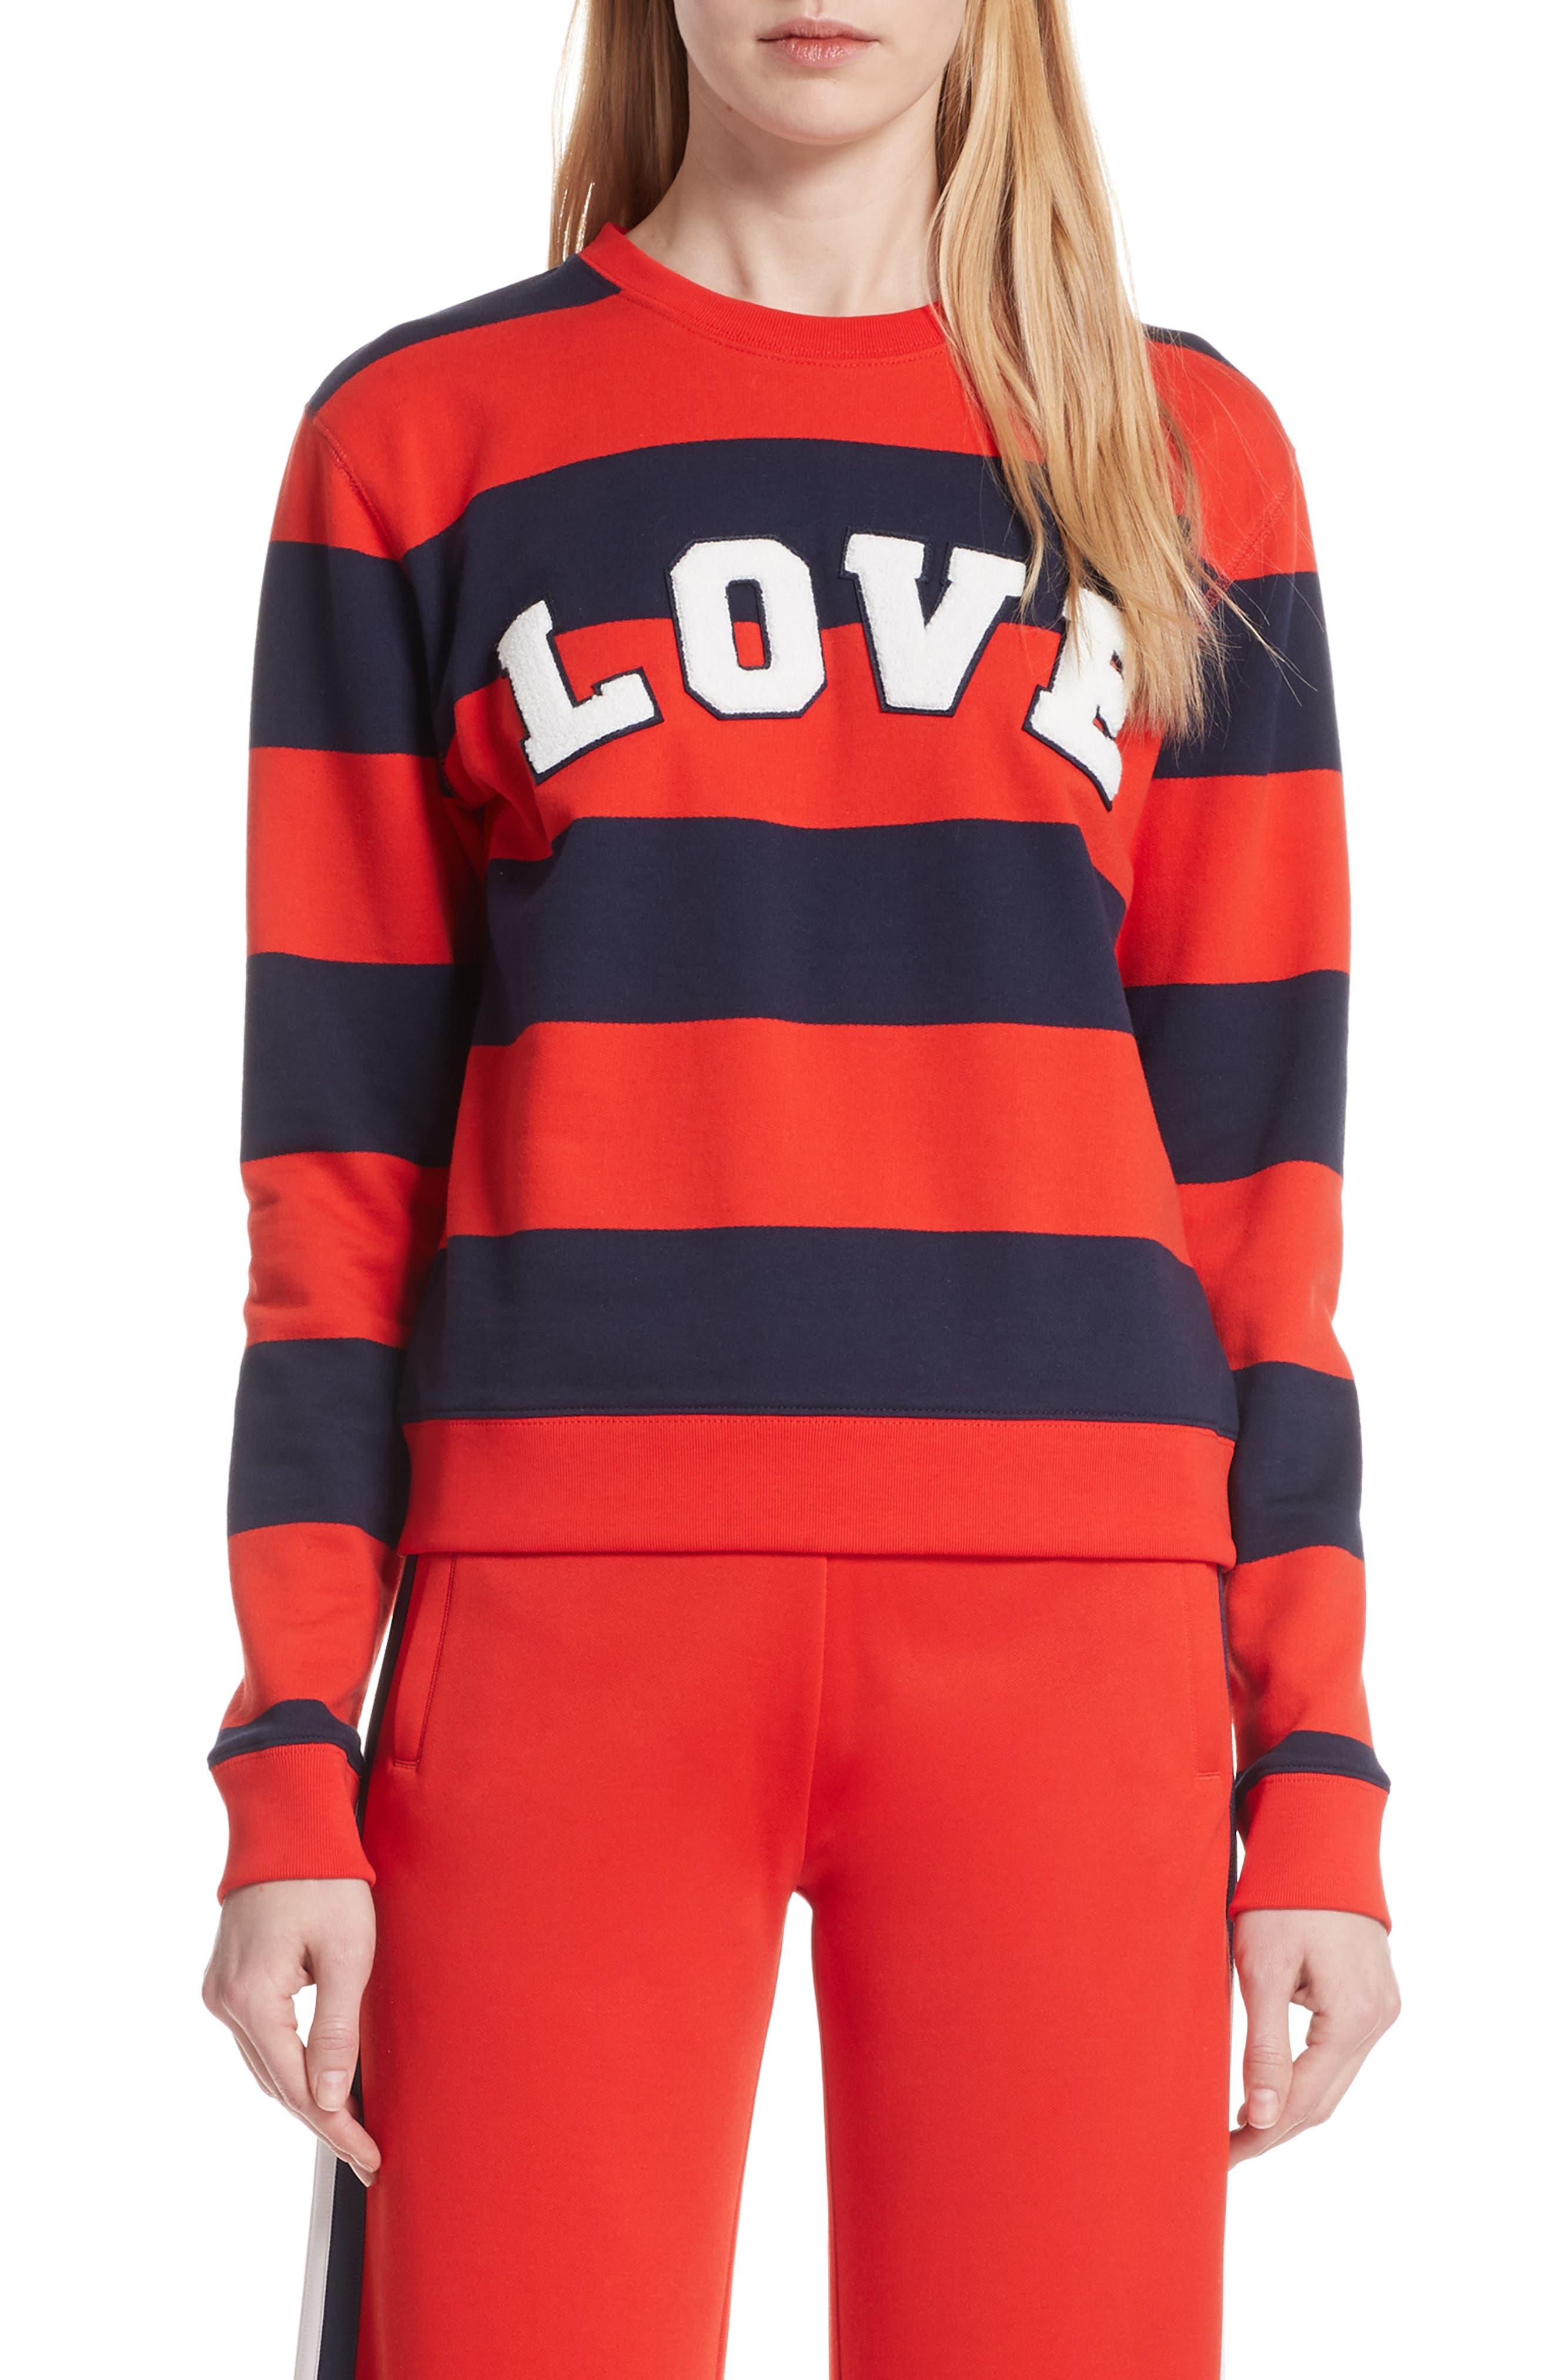 Love Stripe Sweatshirt,                         Main,                         color, RED BROAD STRIPE